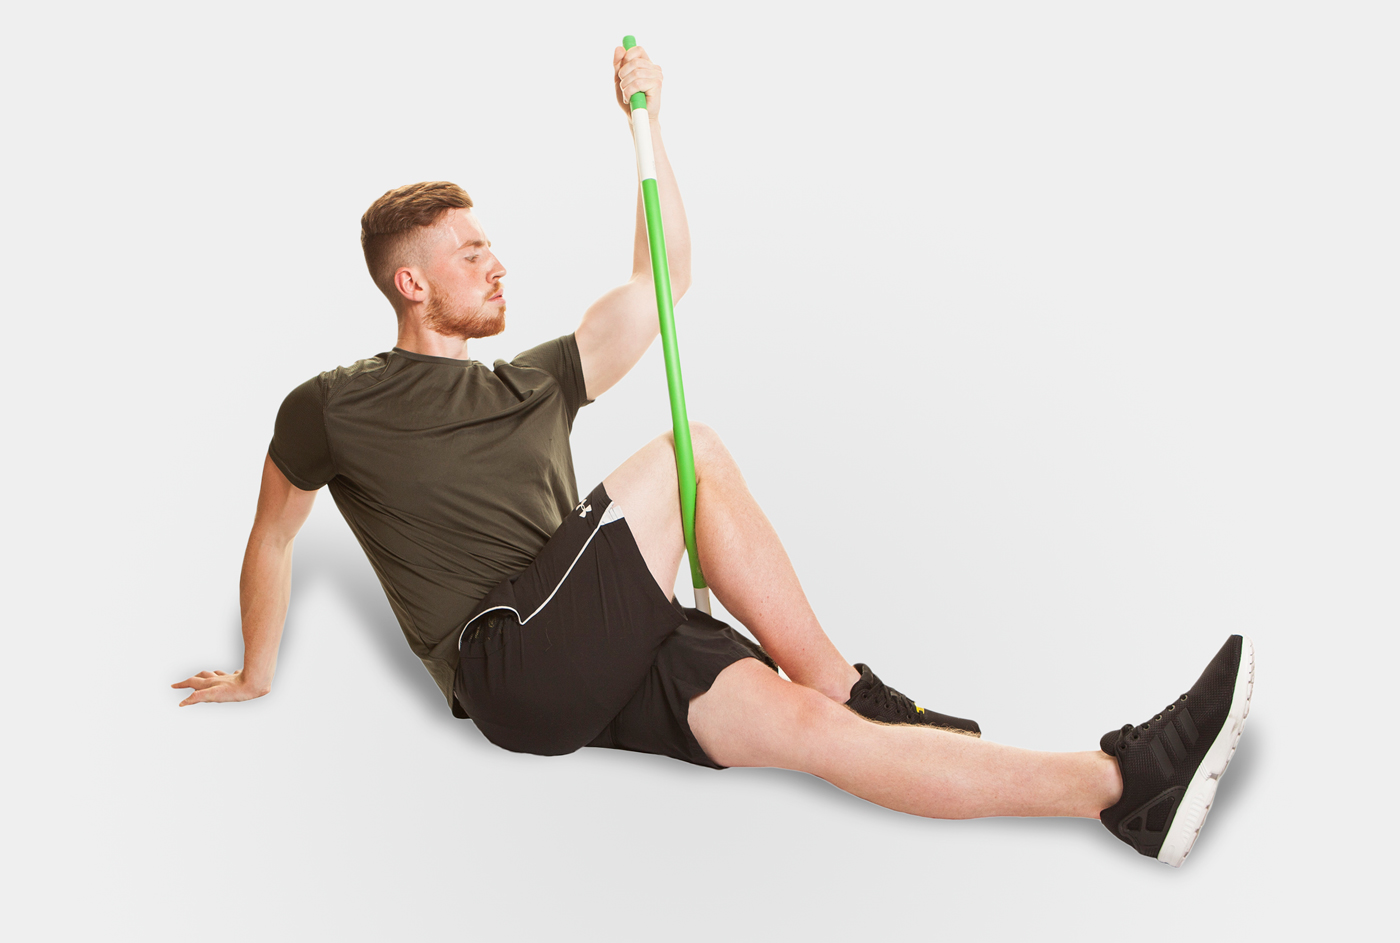 Man using ProFitstick and stretching his legs